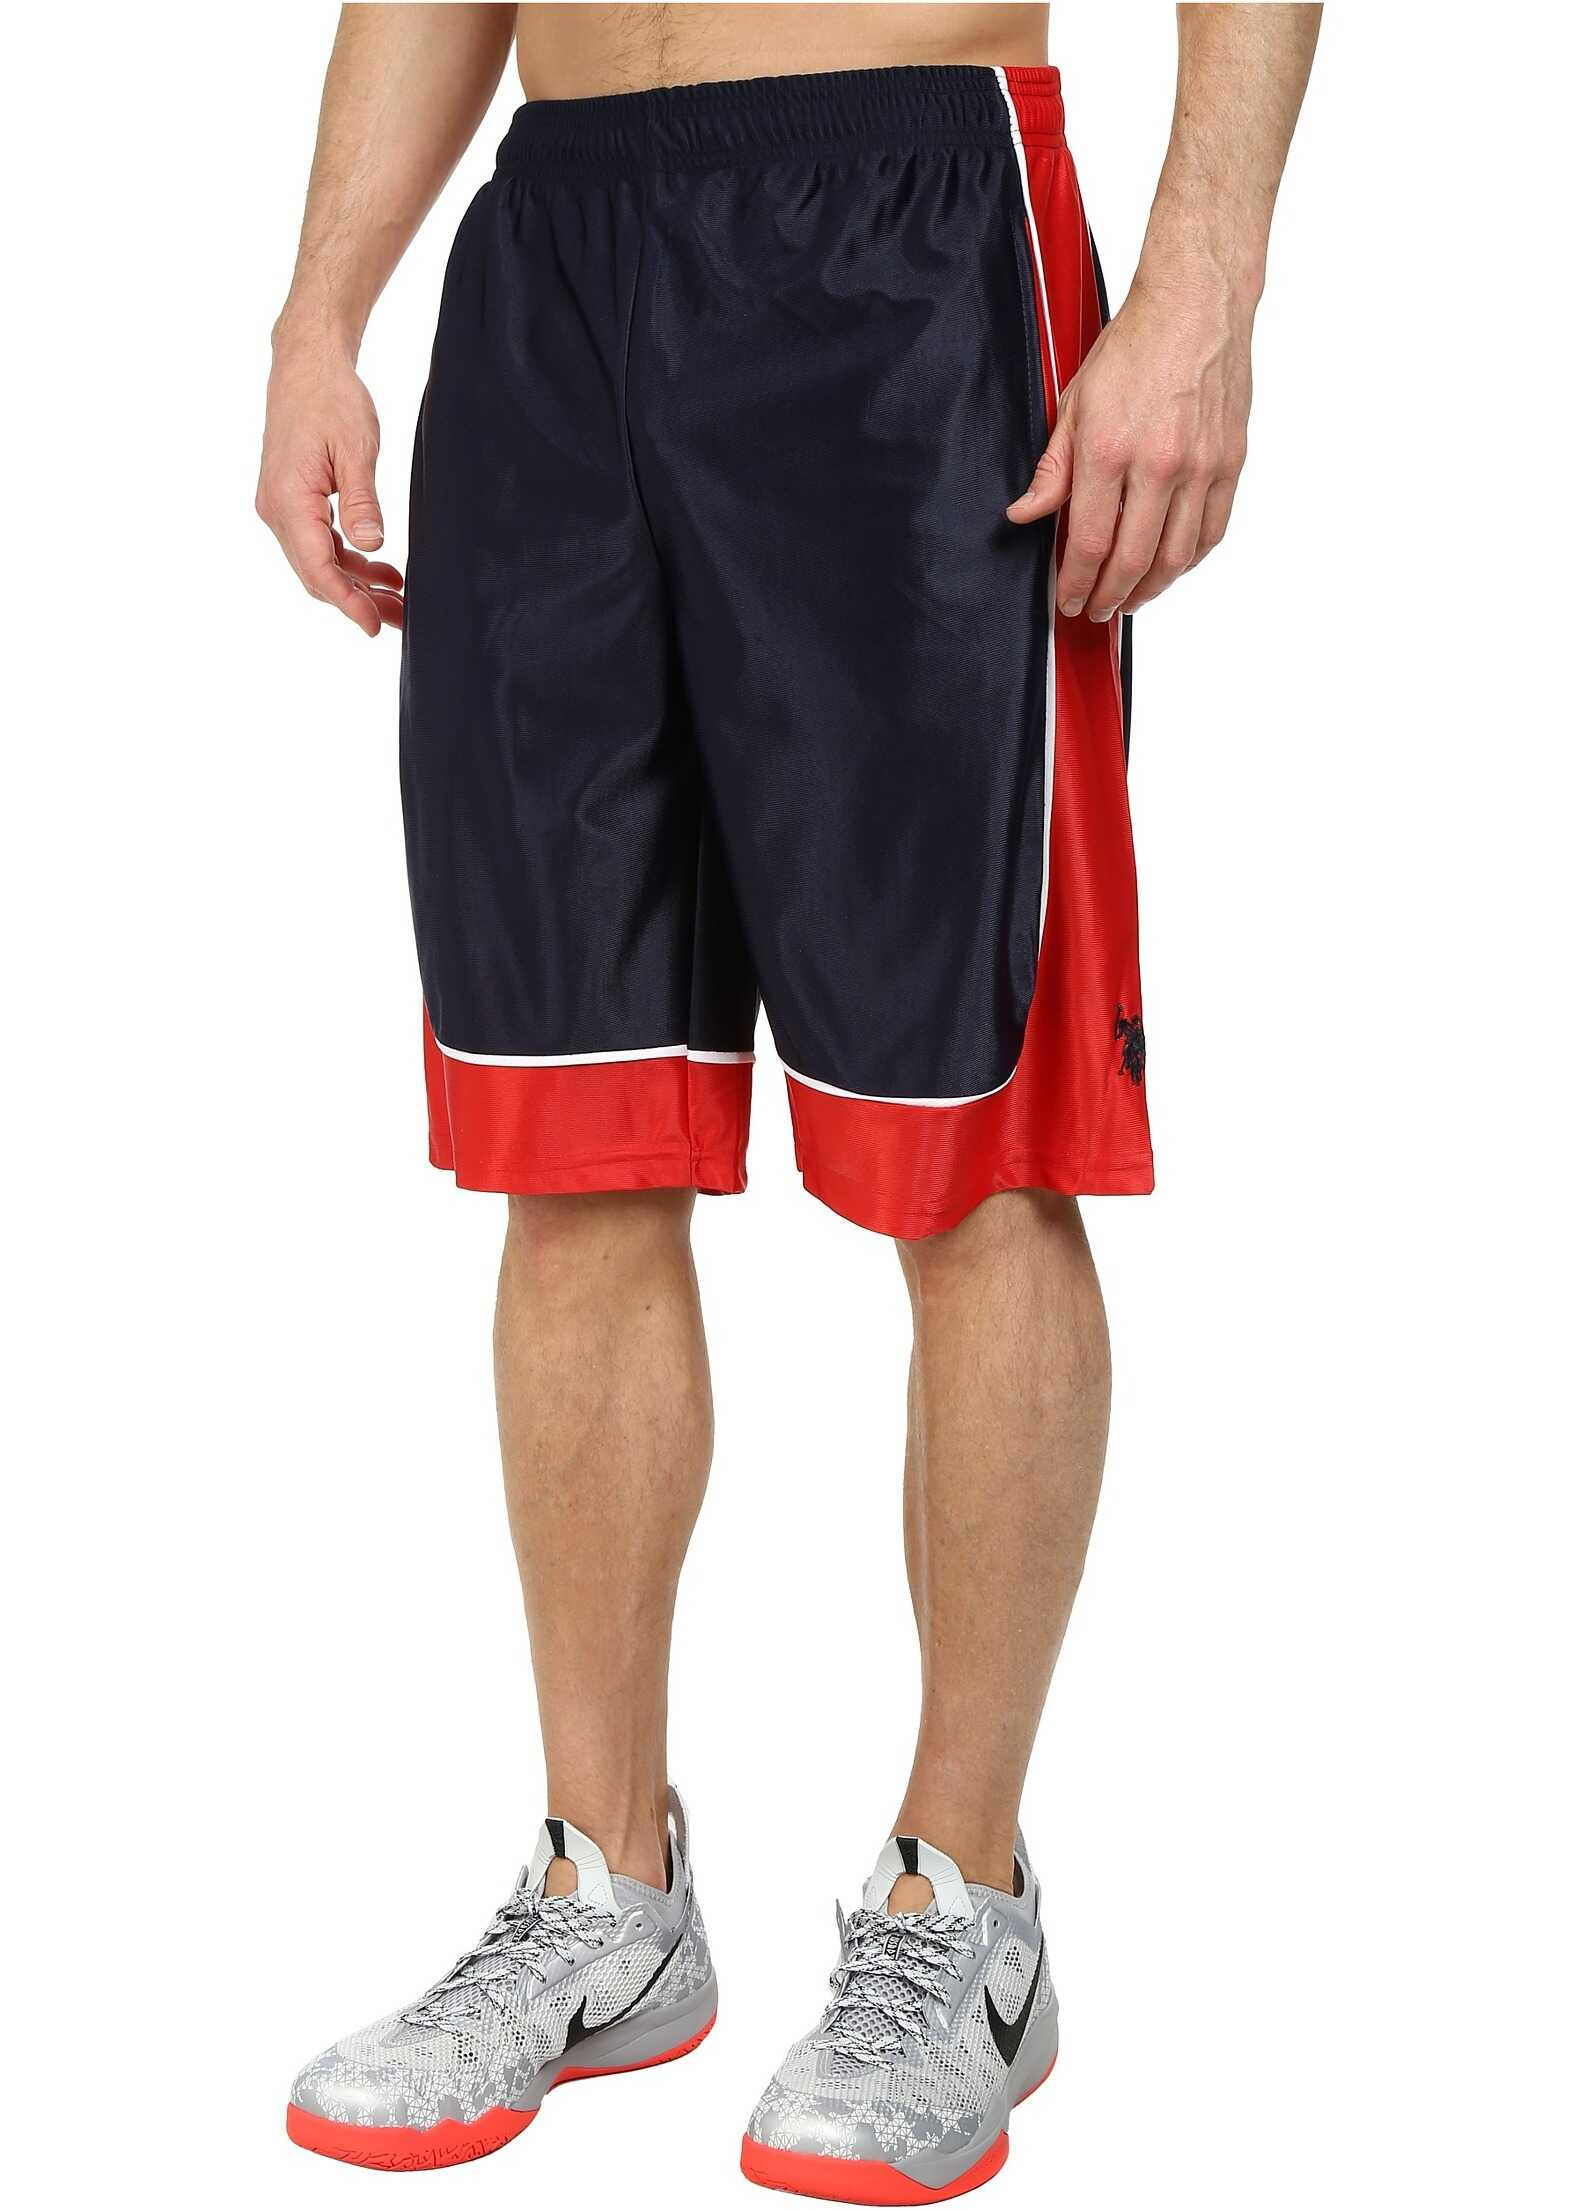 U.S. POLO ASSN. Athletic Shorts with Dazzle Side Panel Classic Navy